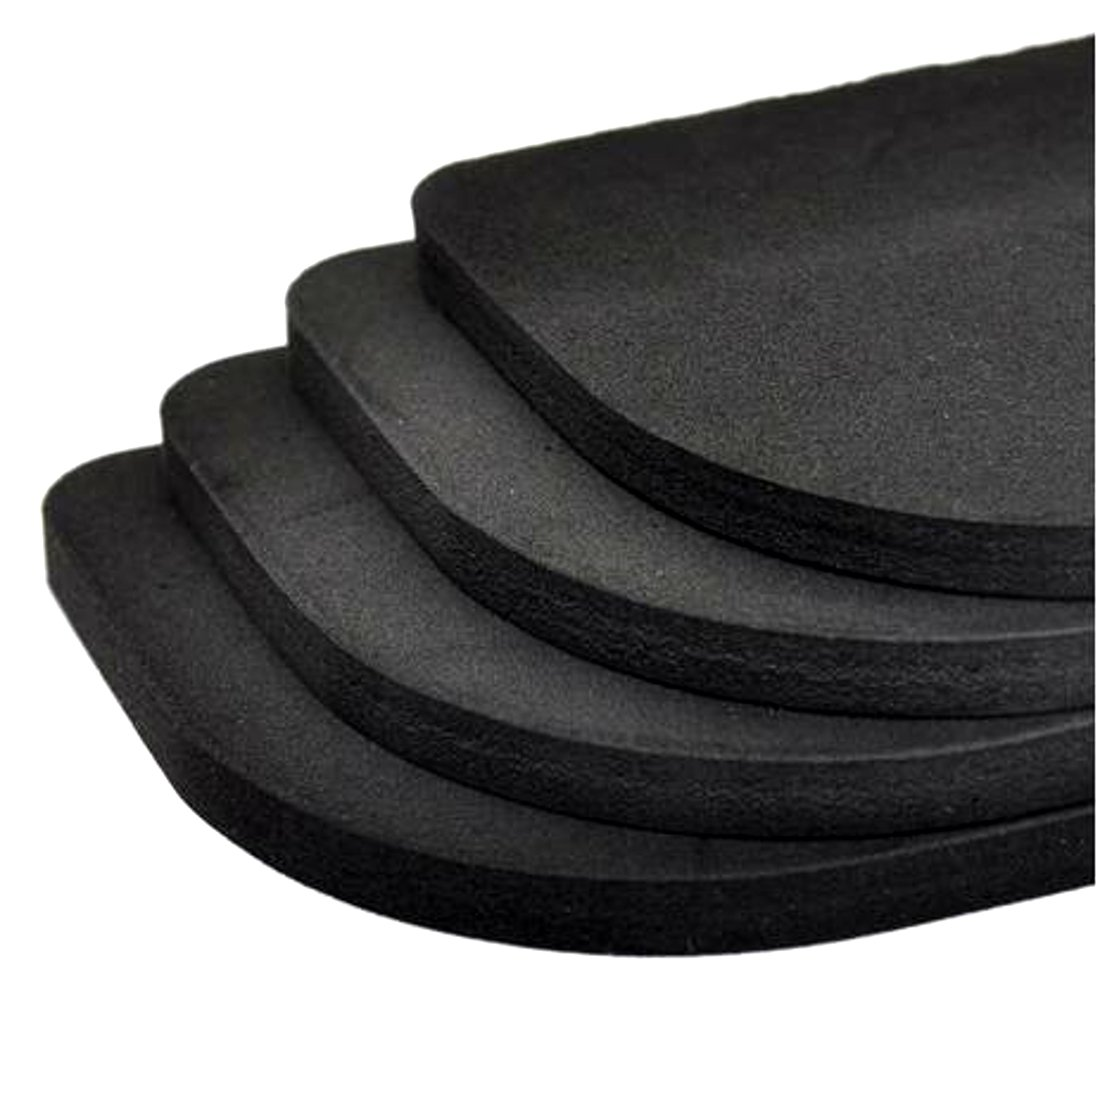 Noise Protection Anti Vibration Pads Steamer Mats for Washing Machine, Fridge, Furniture and More Set of 4 HS86®